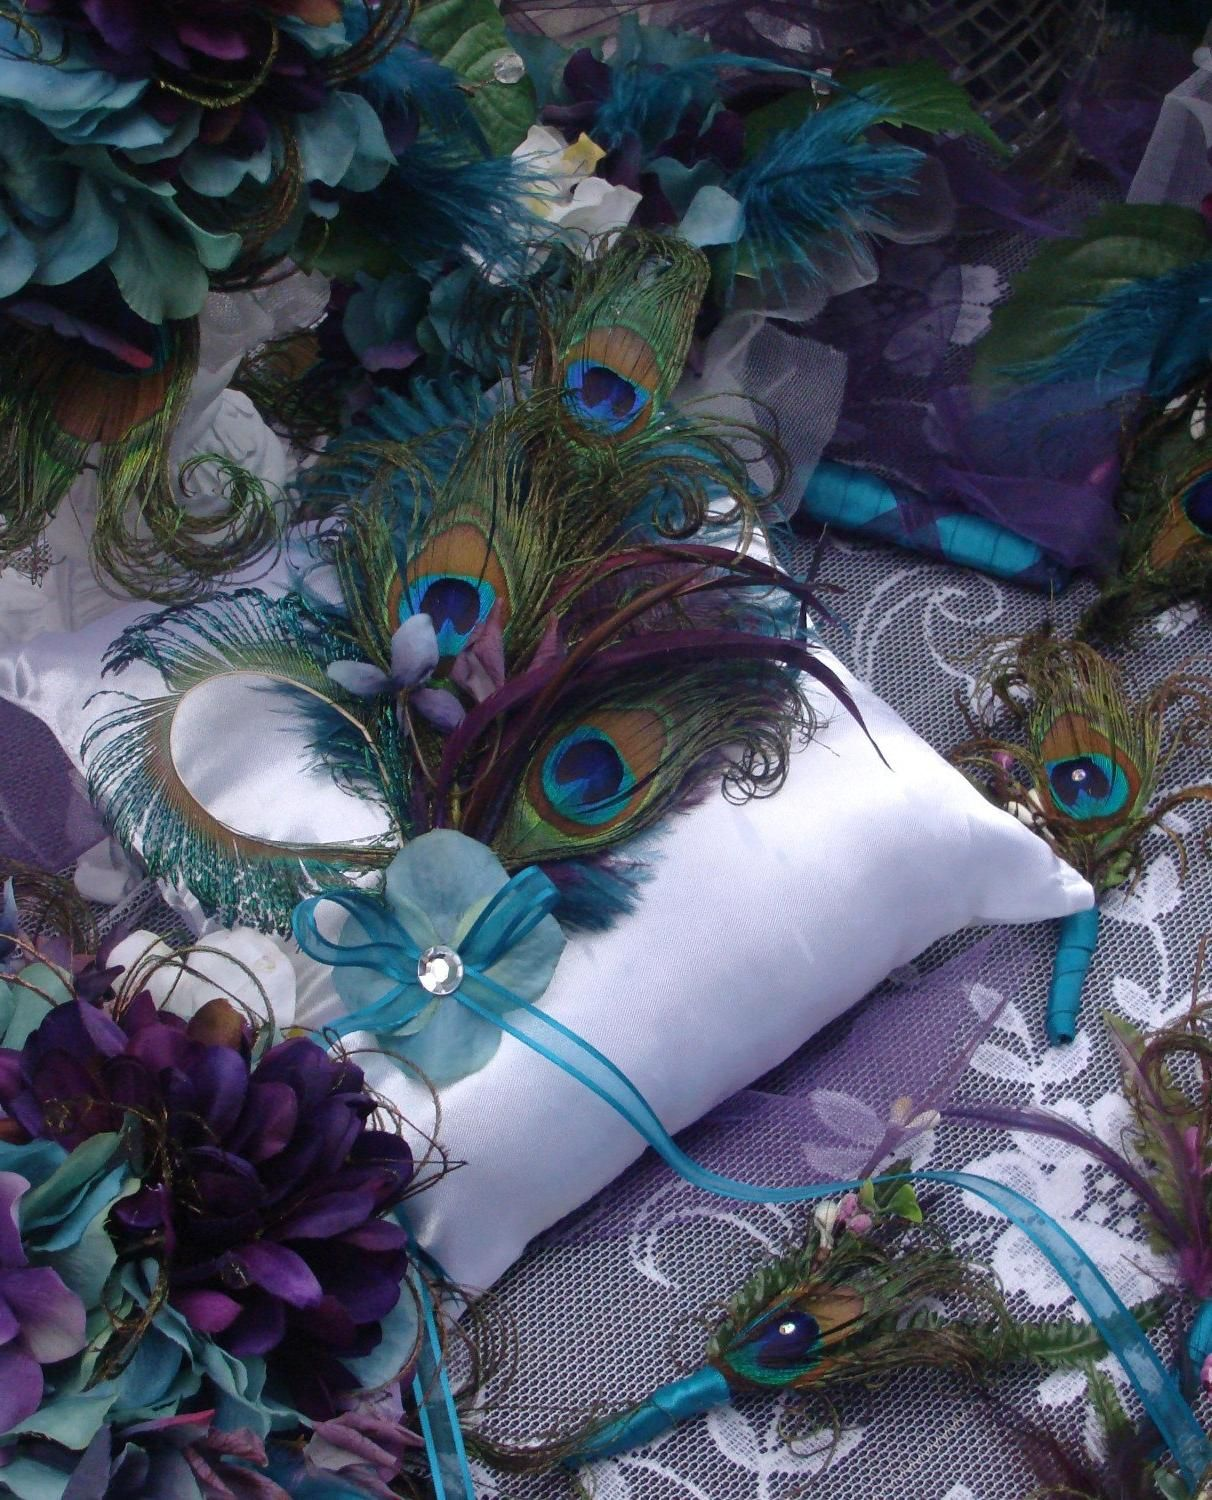 Peacock Wedding Centerpieces Ideas: Peacock Wedding Centerpieces